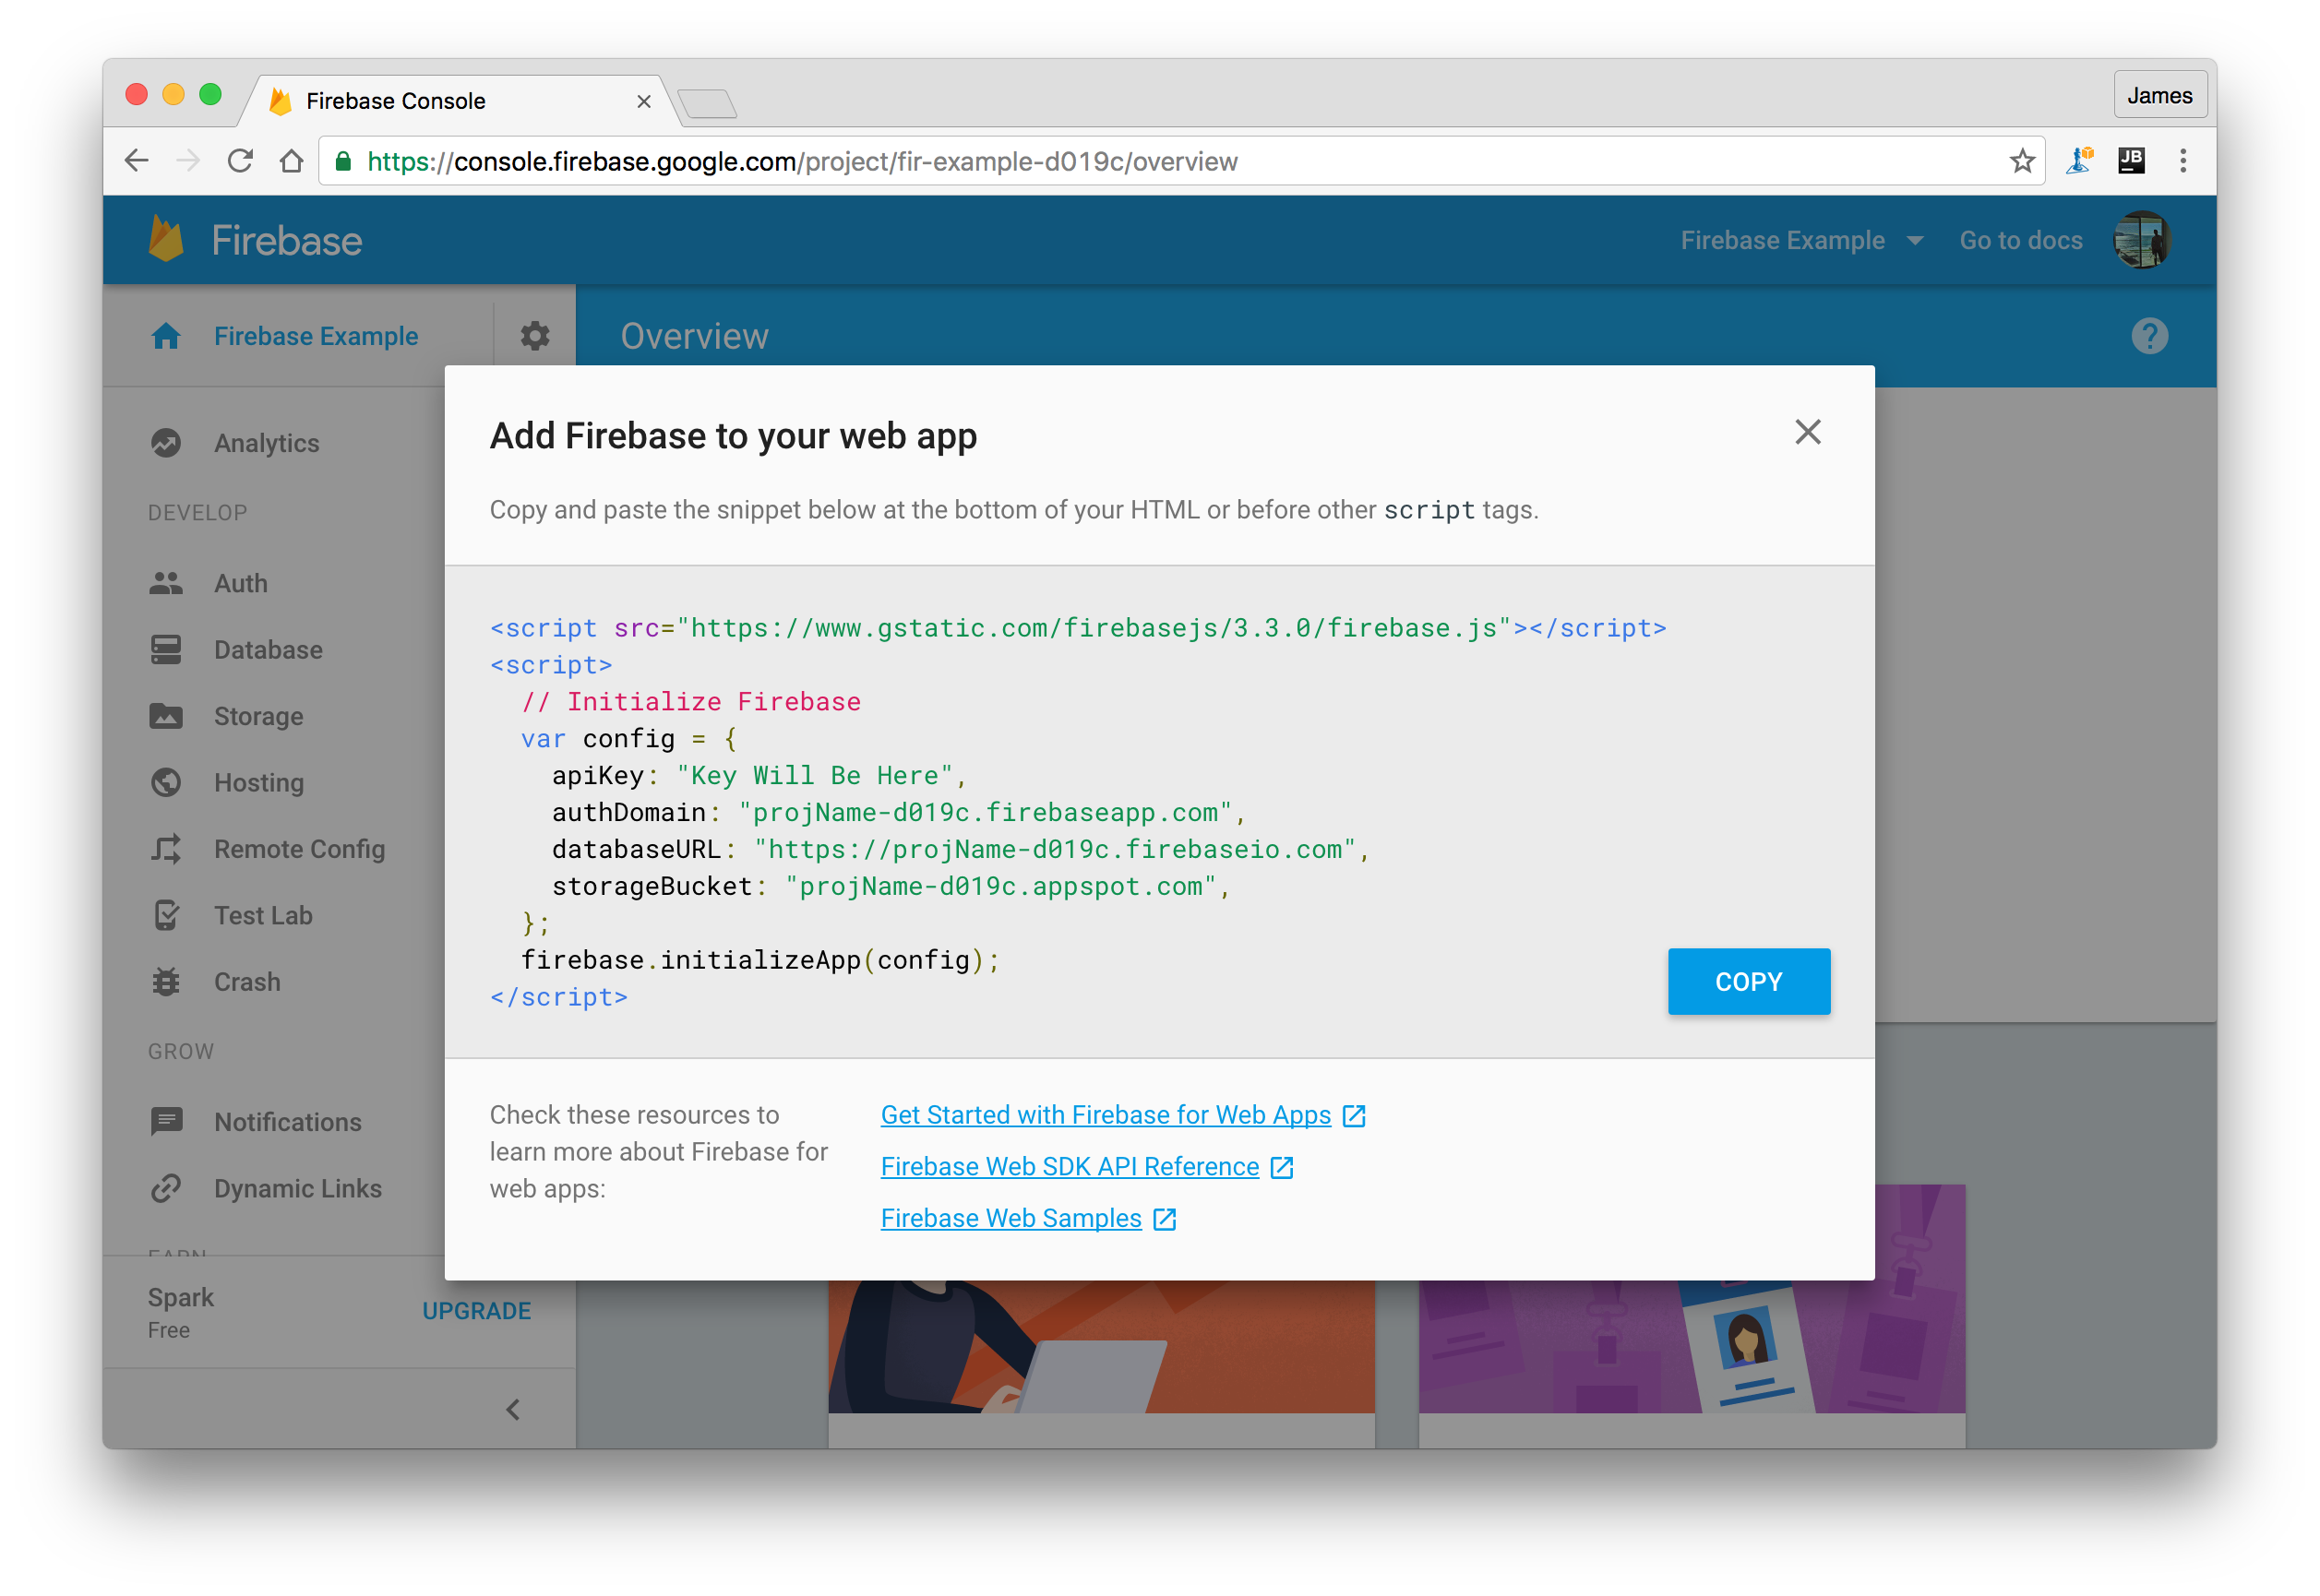 Getting started with React Native and Firebase - James